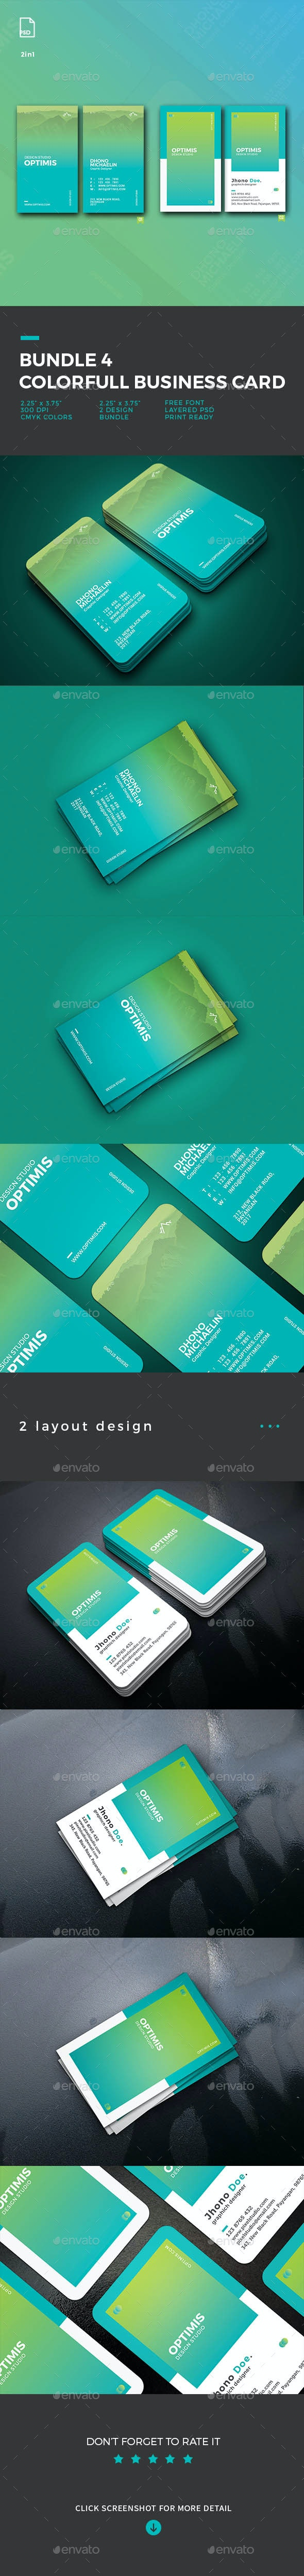 Bundle 5 Gradient Business Card - Business Cards Print Templates